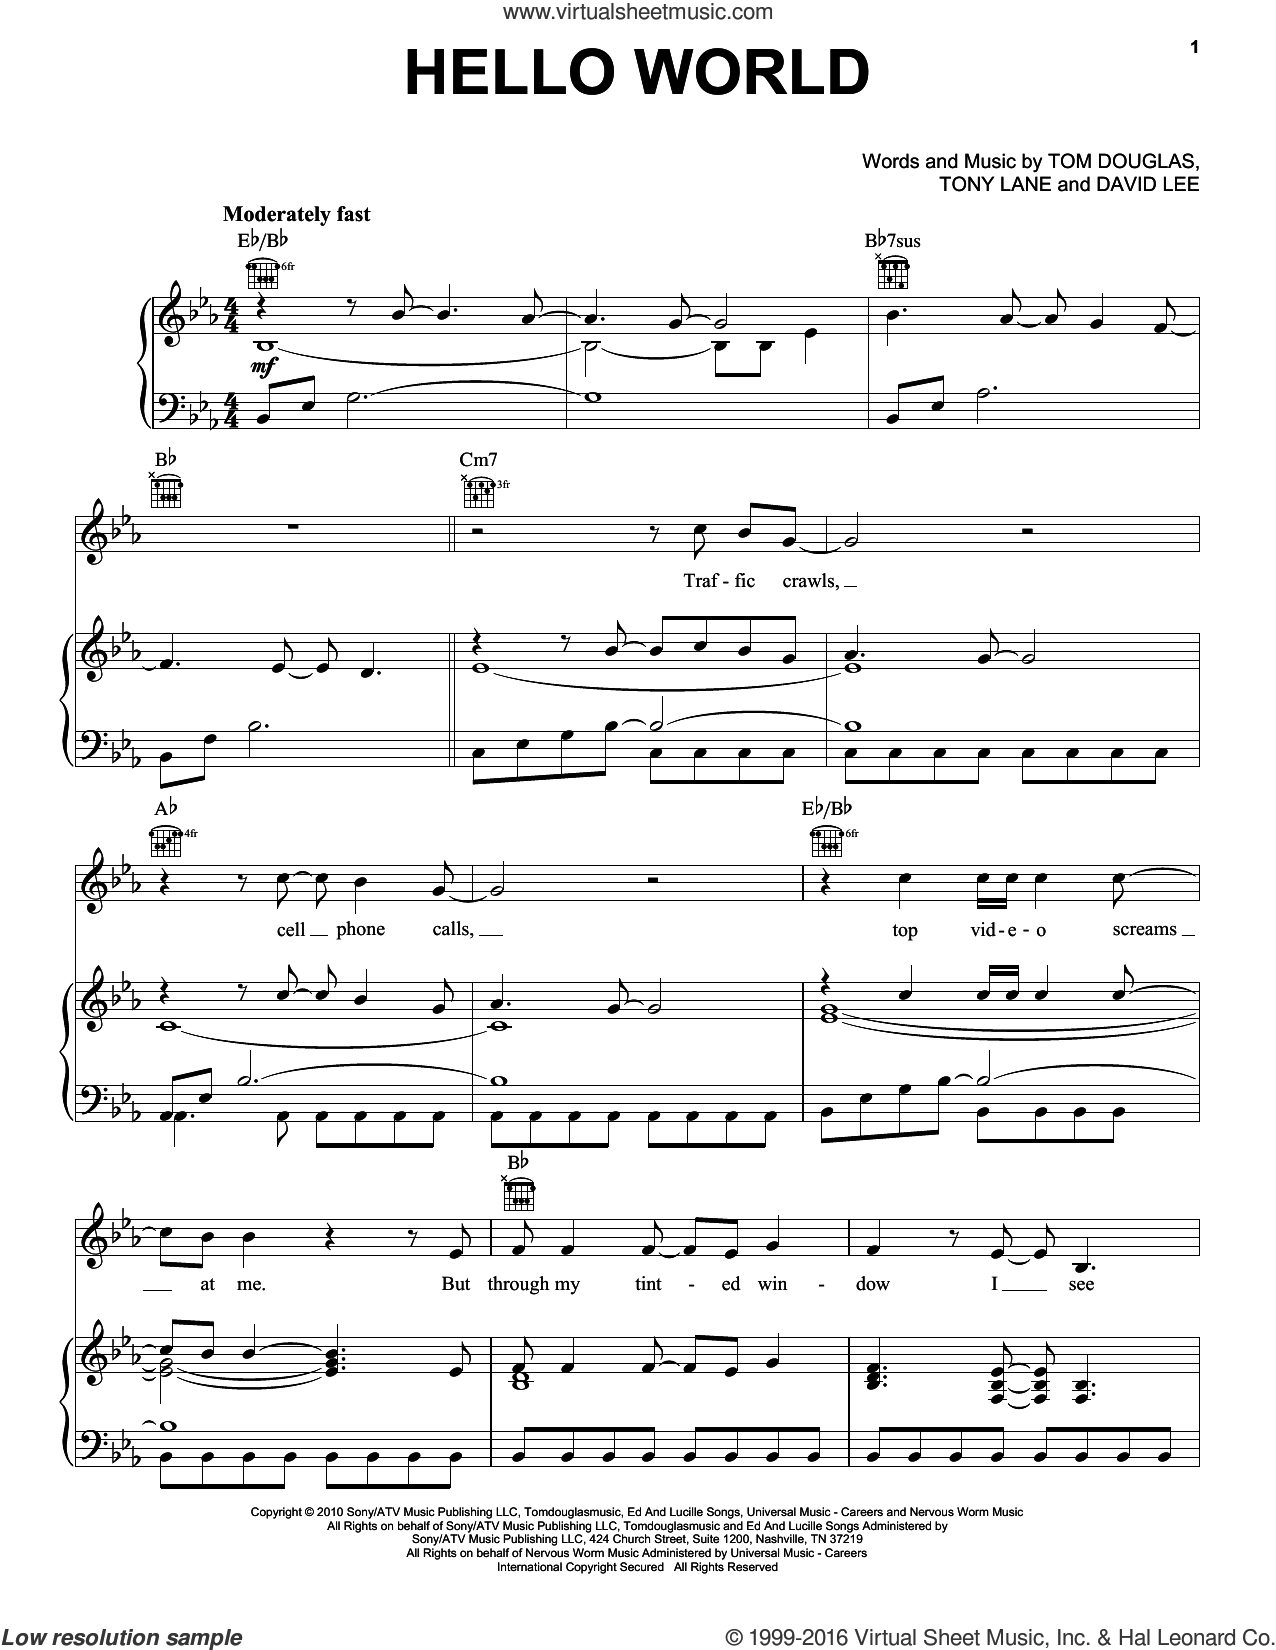 Hello World sheet music for voice, piano or guitar by Tony Lane, Lady Antebellum, David Lee and Tom Douglas